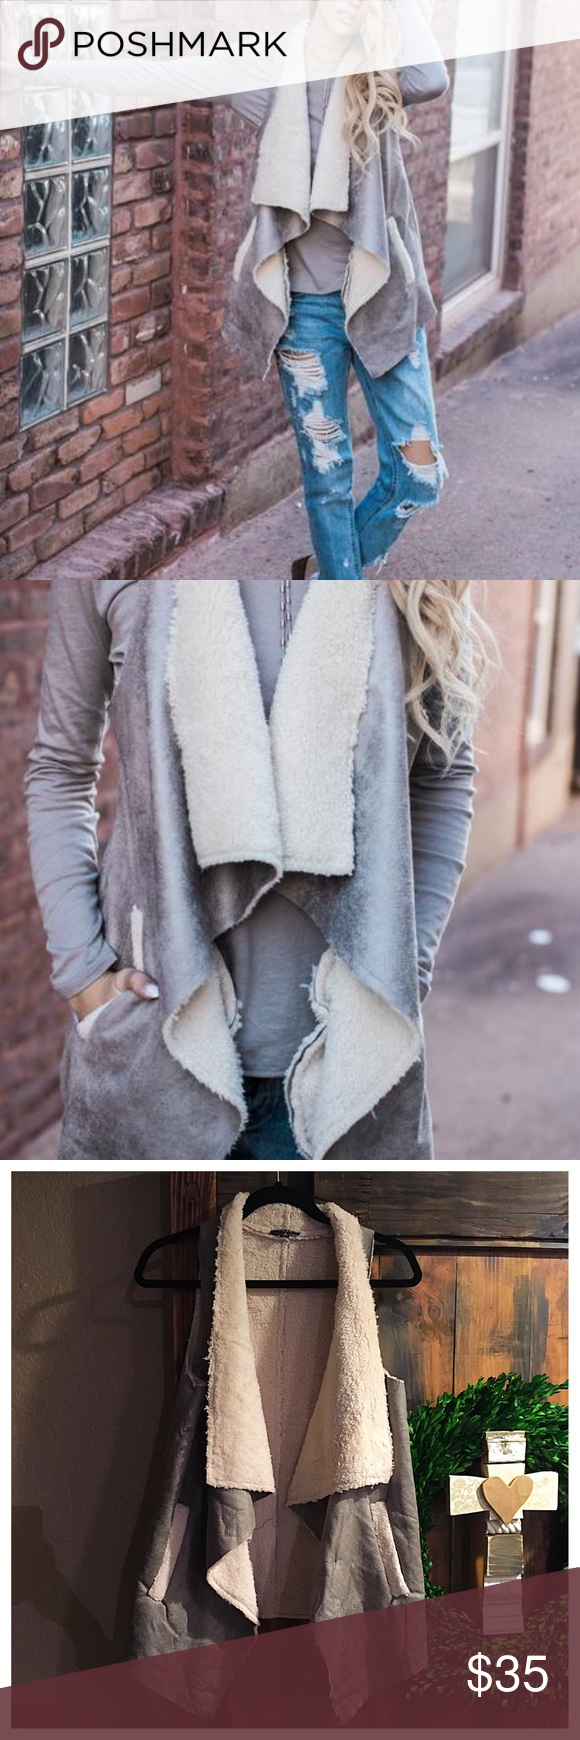 Pocketed vest New without tags faux leather pocketed vest in a grey hue. Dry clean only Jackets & Coats Vests